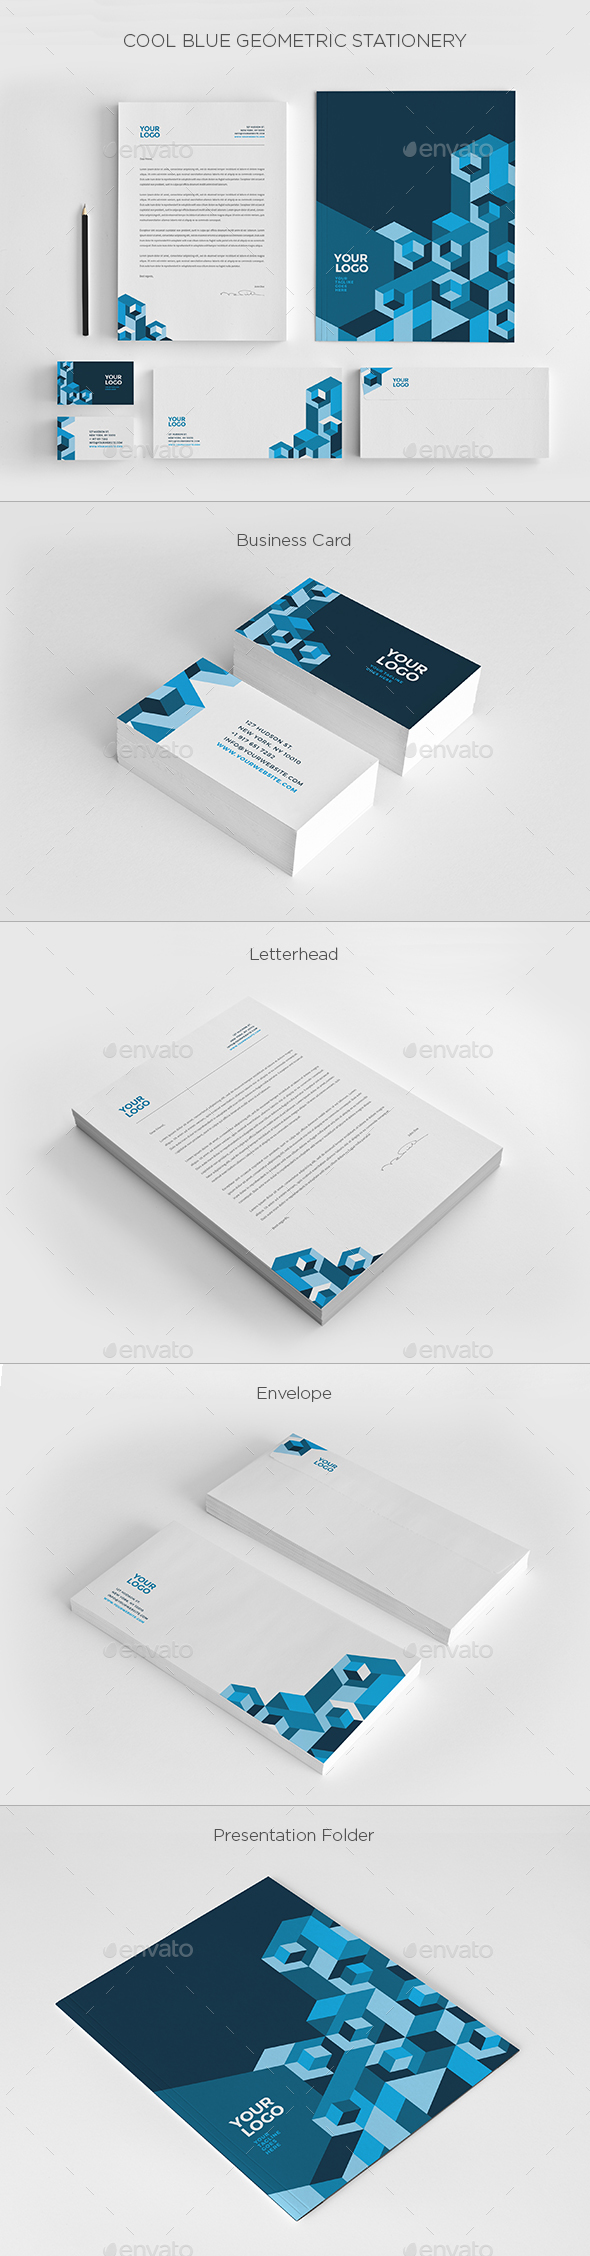 Cool Blue Geometric Stationery - Stationery Print Templates